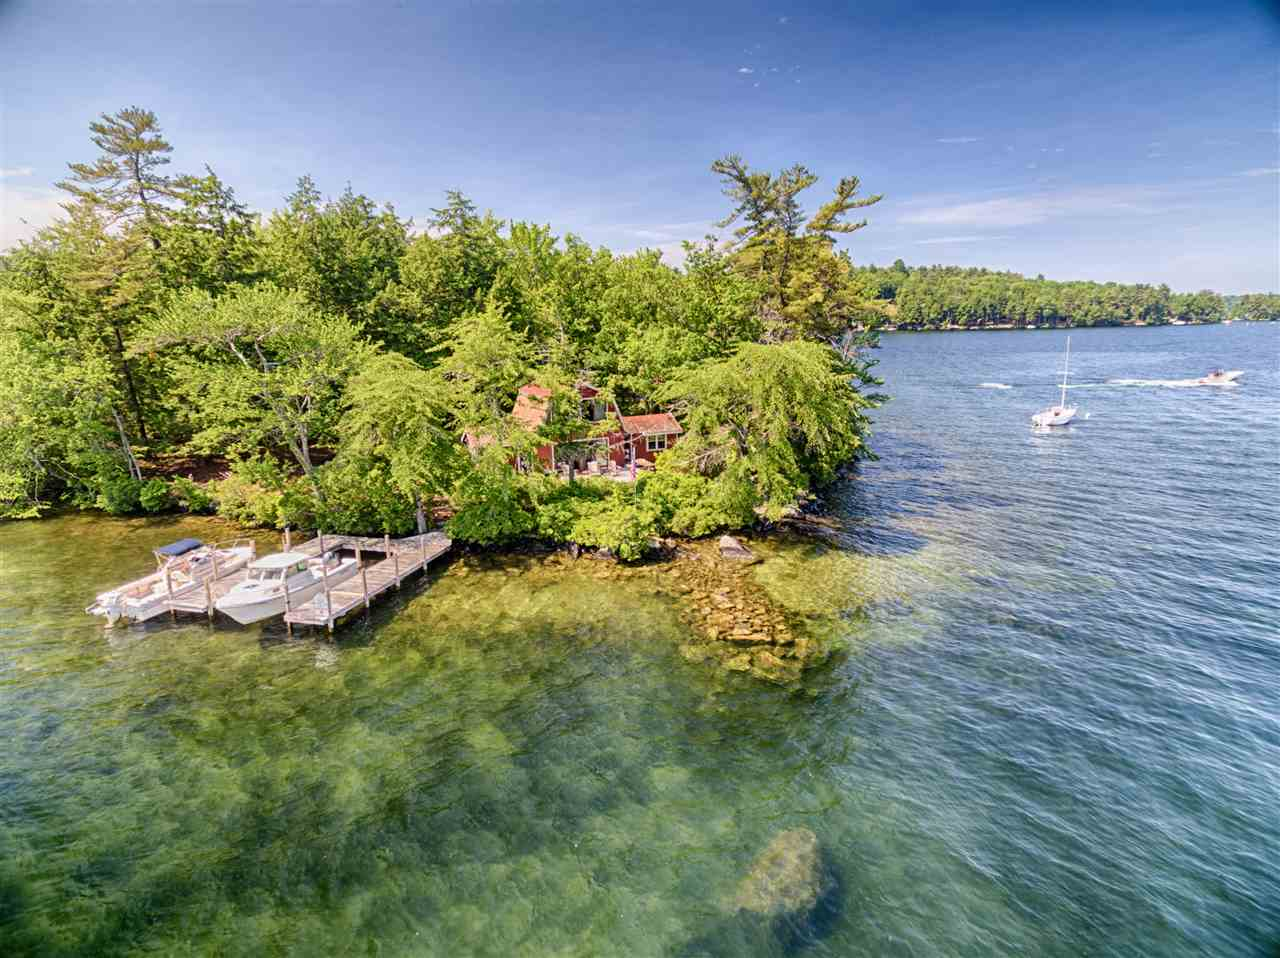 MLS 4702497: 1 Cow Island Island, Tuftonboro NH